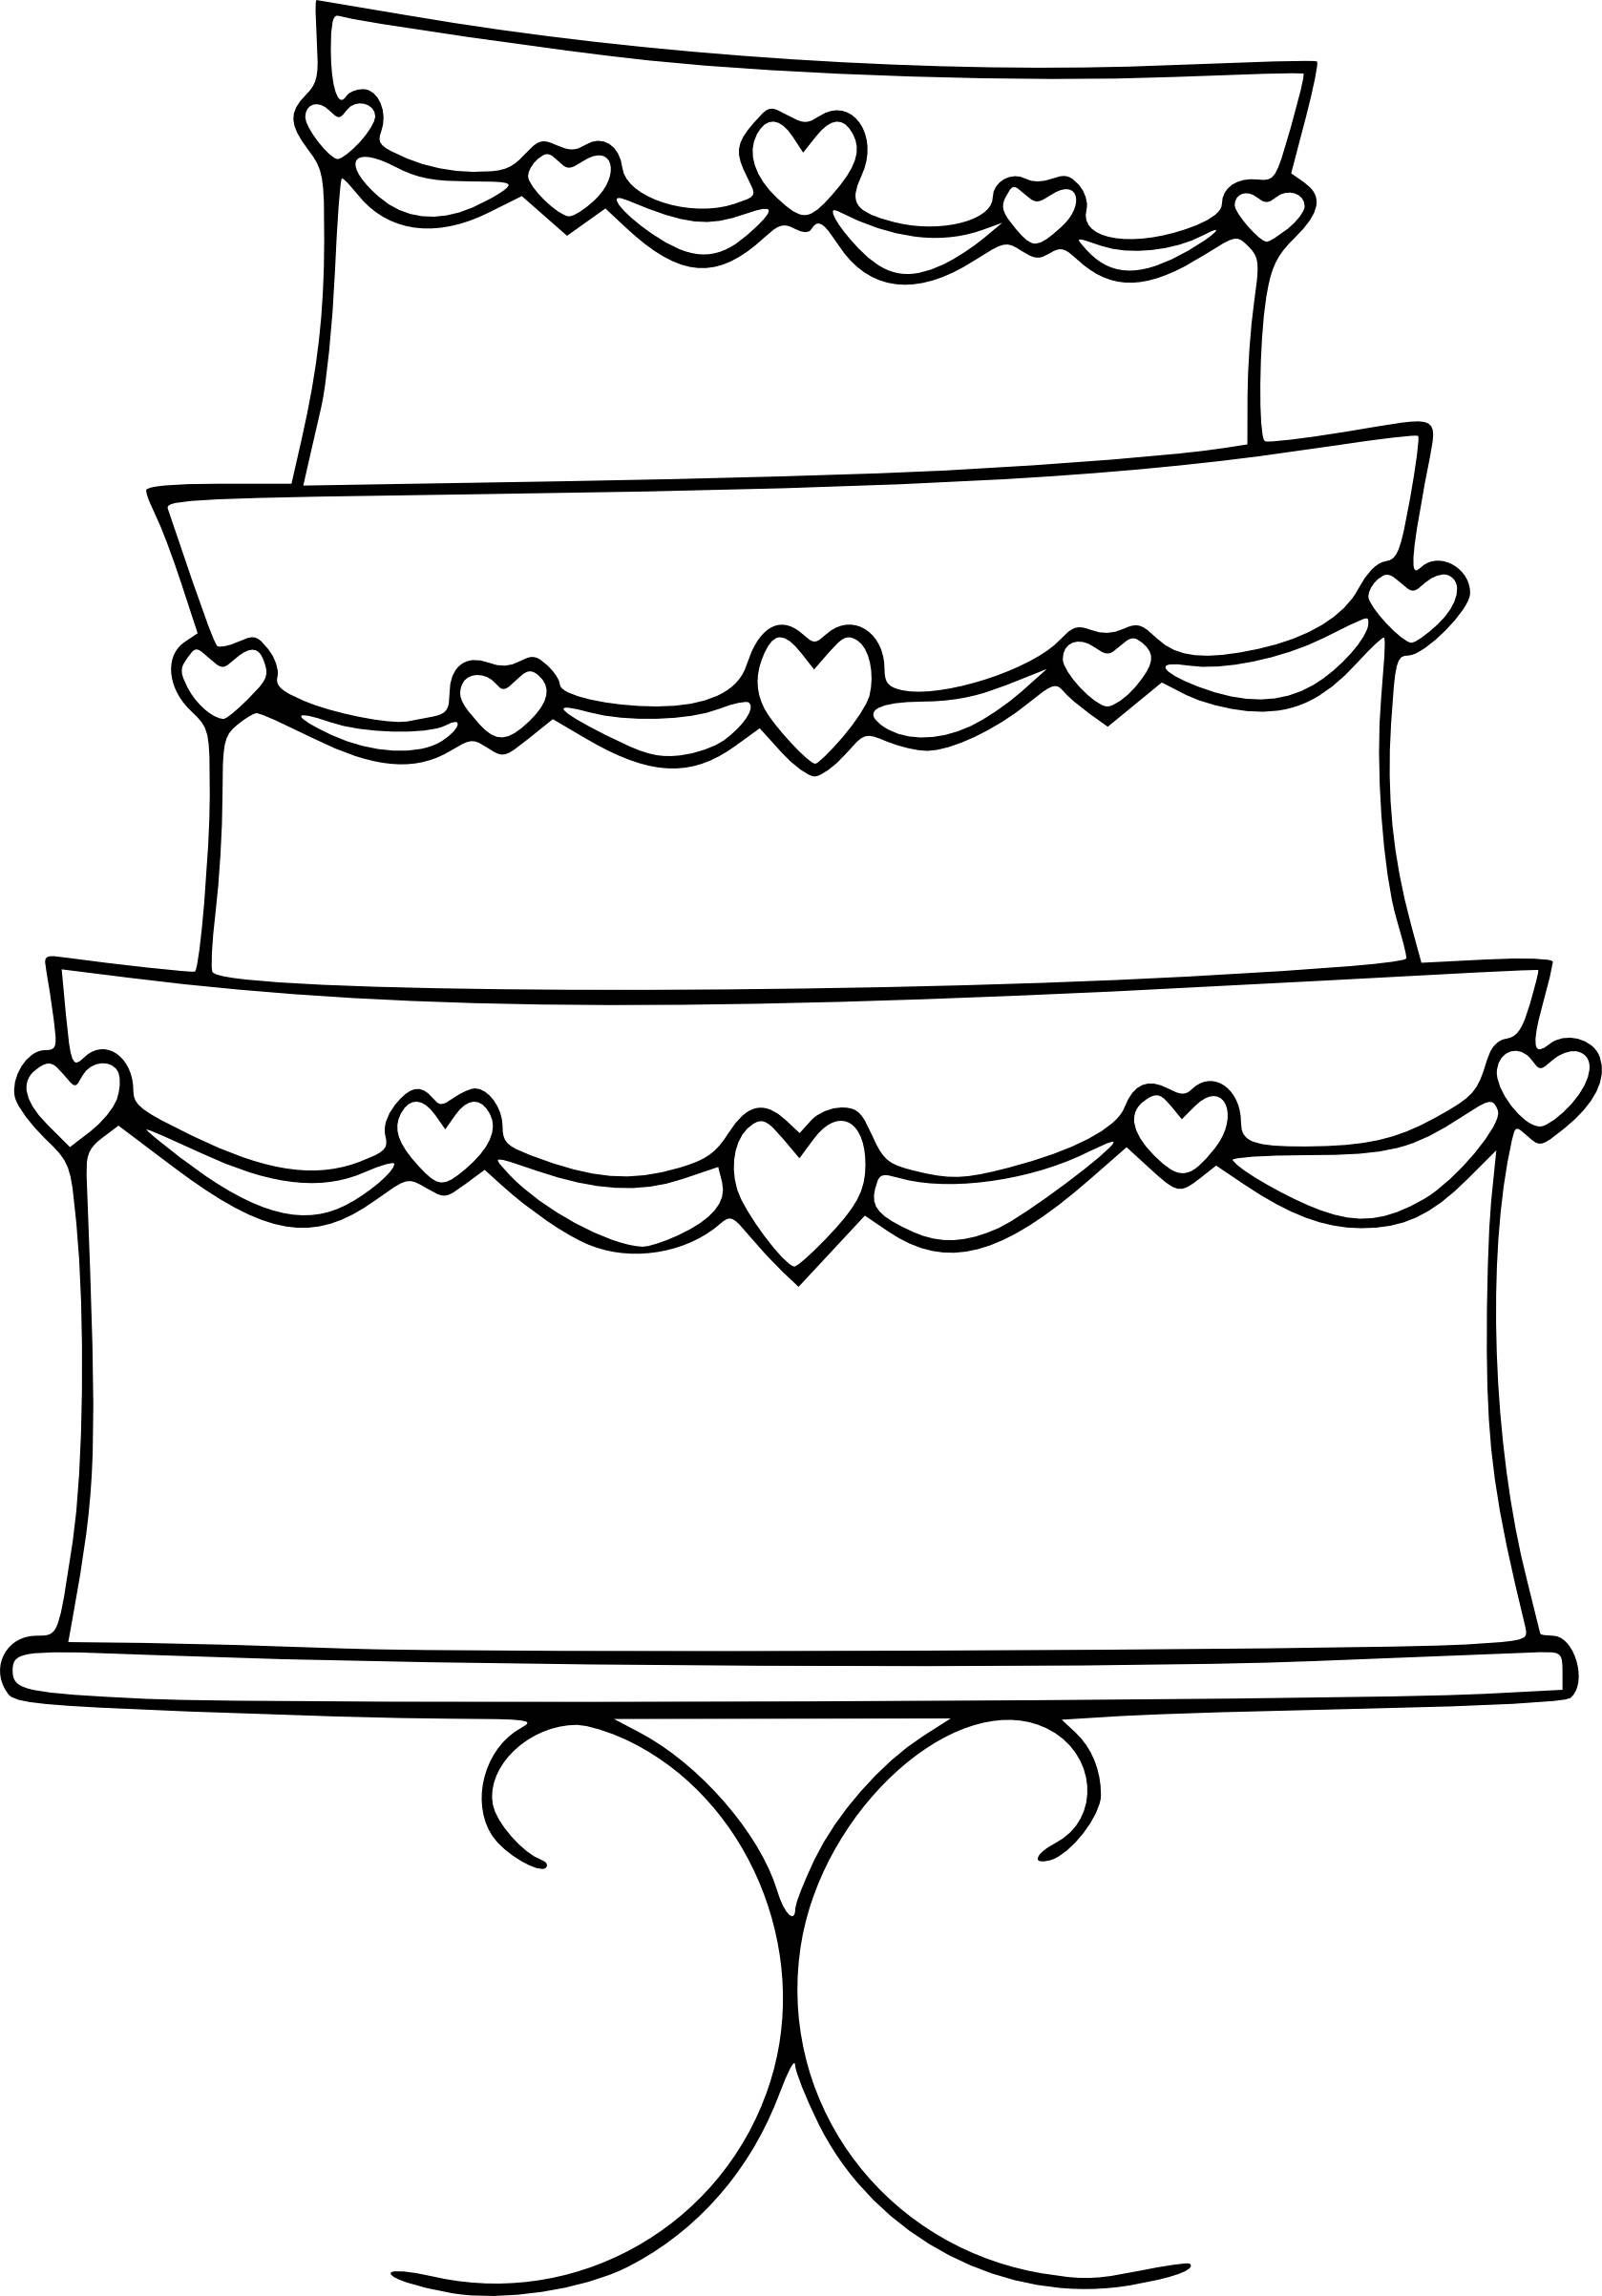 Wedding Cake Color Pages Free Printable #18 of 20